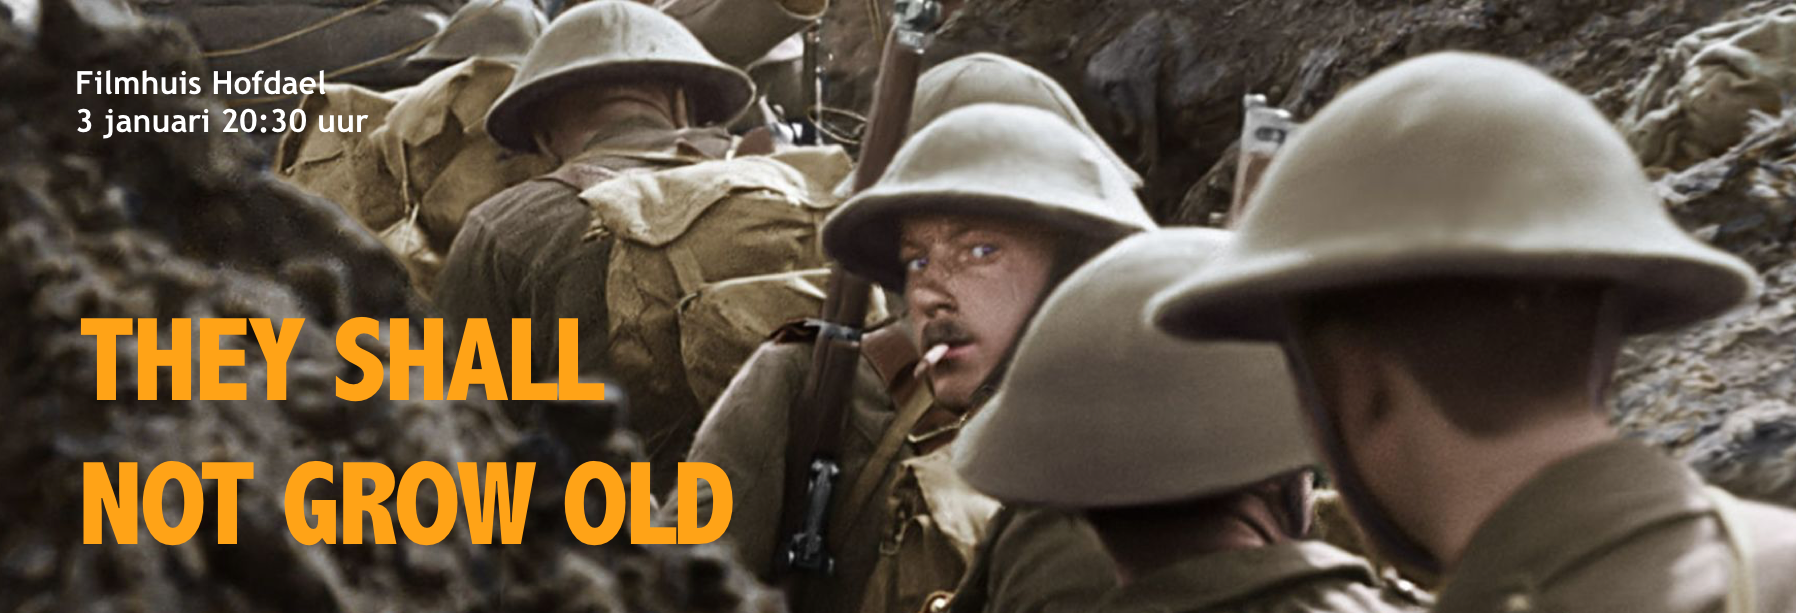 Film: They Shall Not Grow Old | Geldrop Centrum